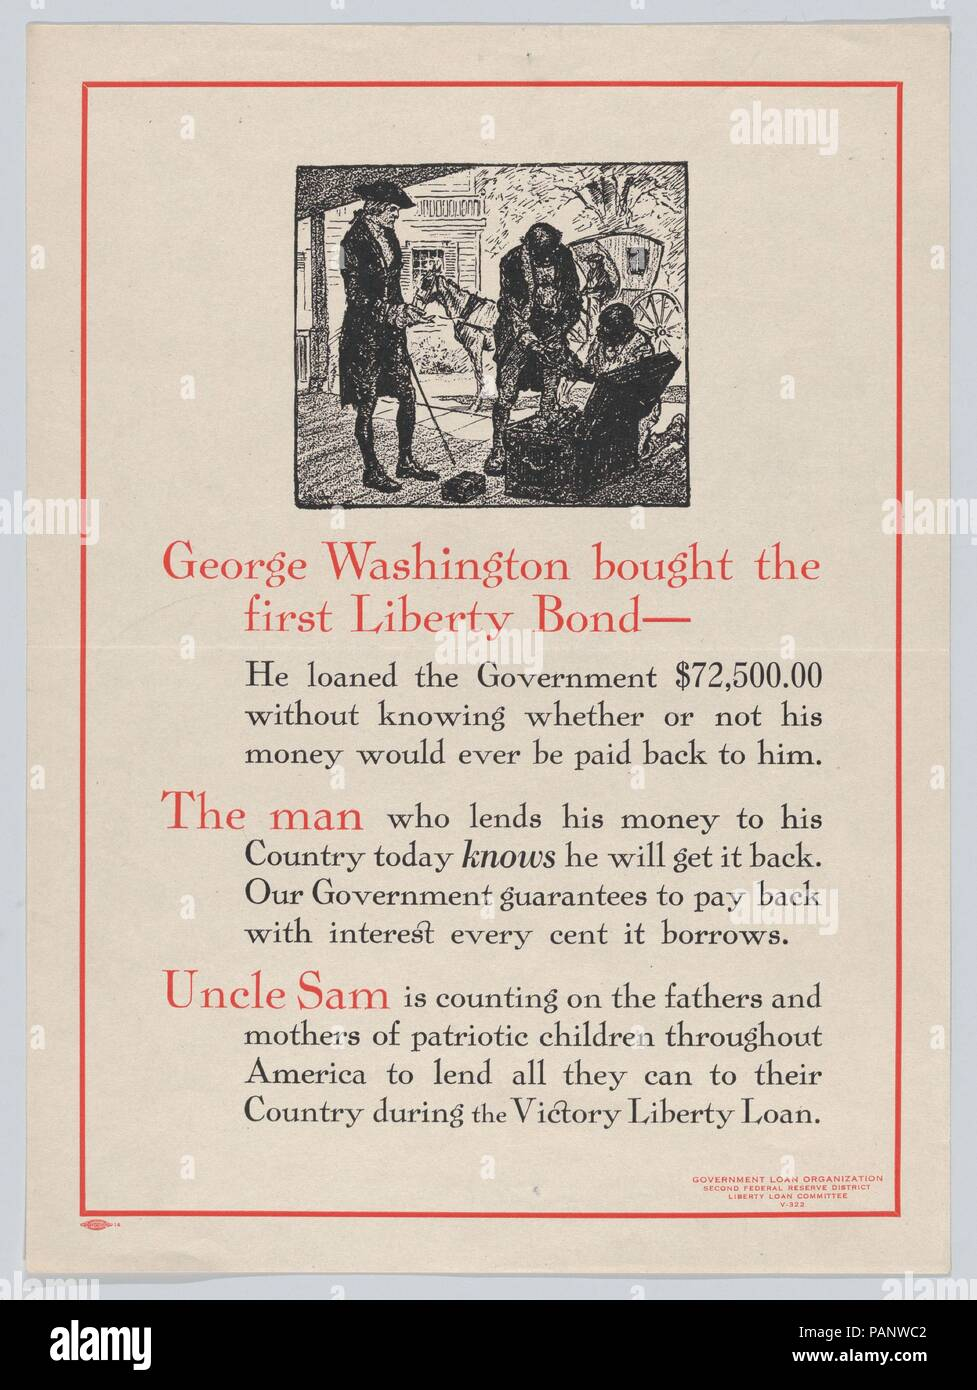 George Washington bought the first Liberty Bond. Dimensions: Sheet: 12 3/8 × 9 5/16 in. (31.4 × 23.6 cm). Publisher: Issued by Liberty Loan Committee. Date: 1919.  World War I poster. Museum: Metropolitan Museum of Art, New York, USA. - Stock Image